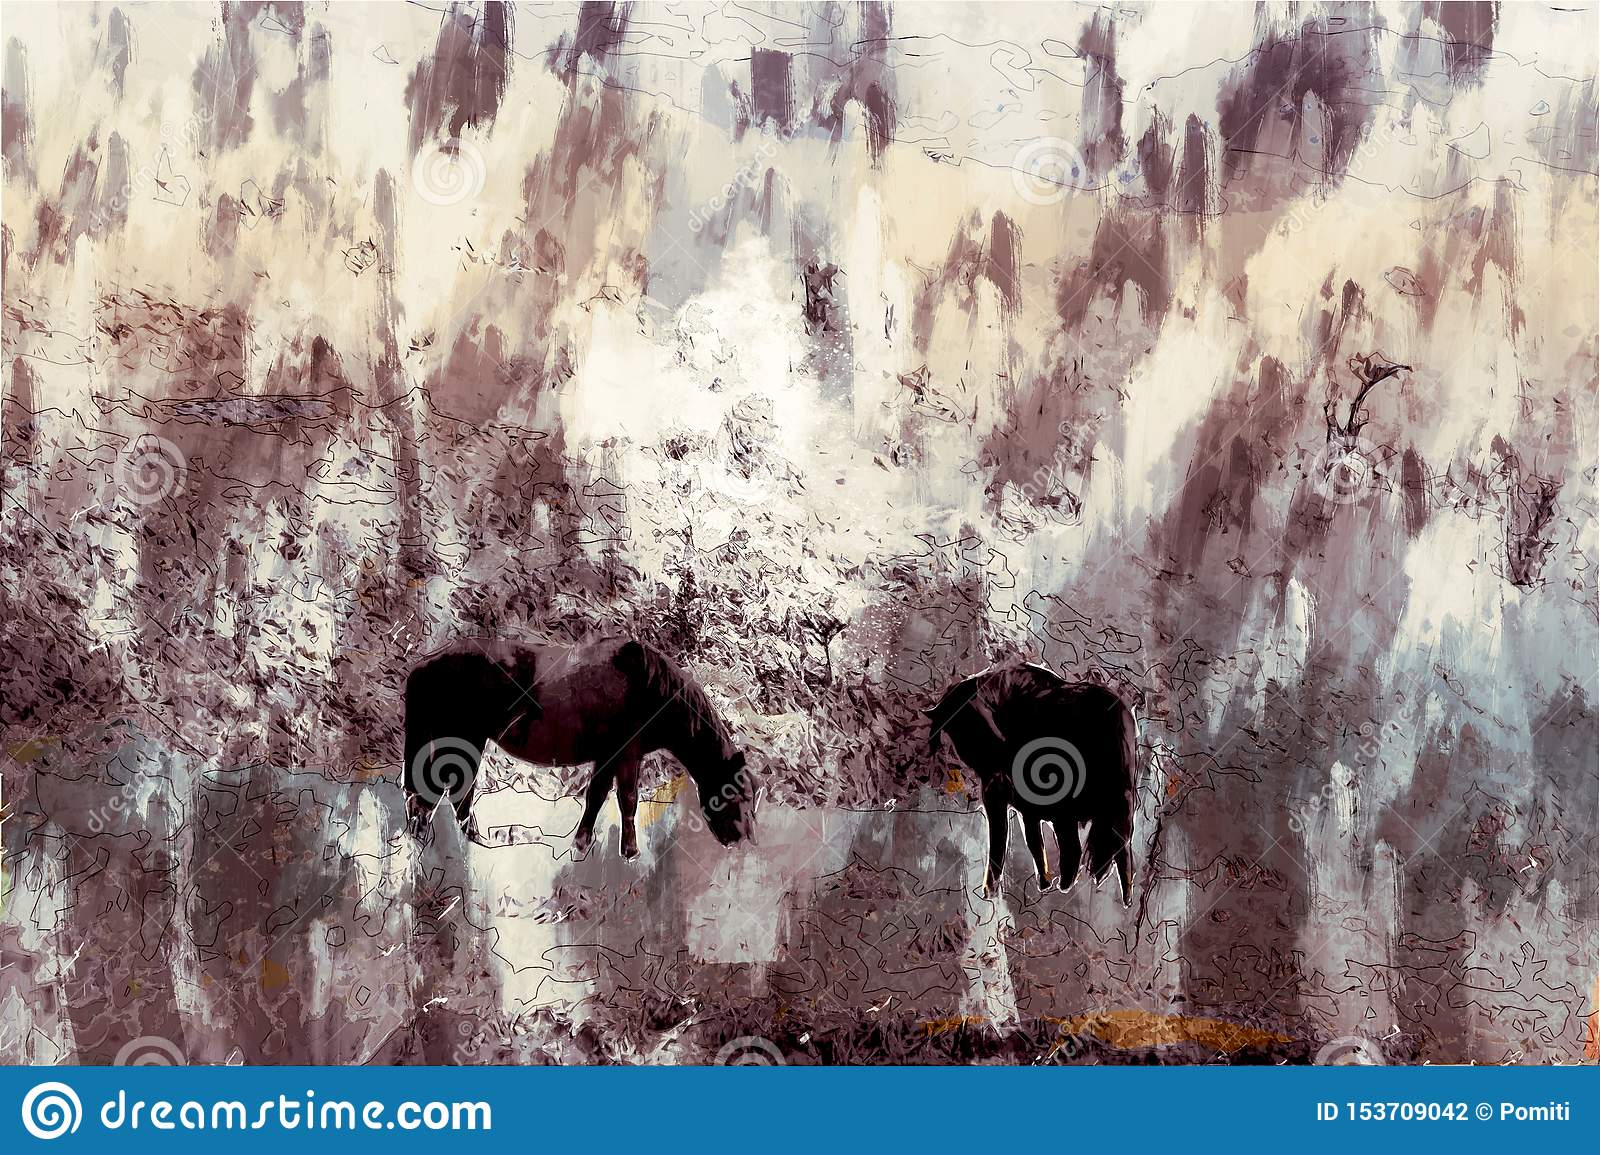 Abstract Digital Painting Of Horses In Farm Stock Photo Image Of Walking Abstract 153709042